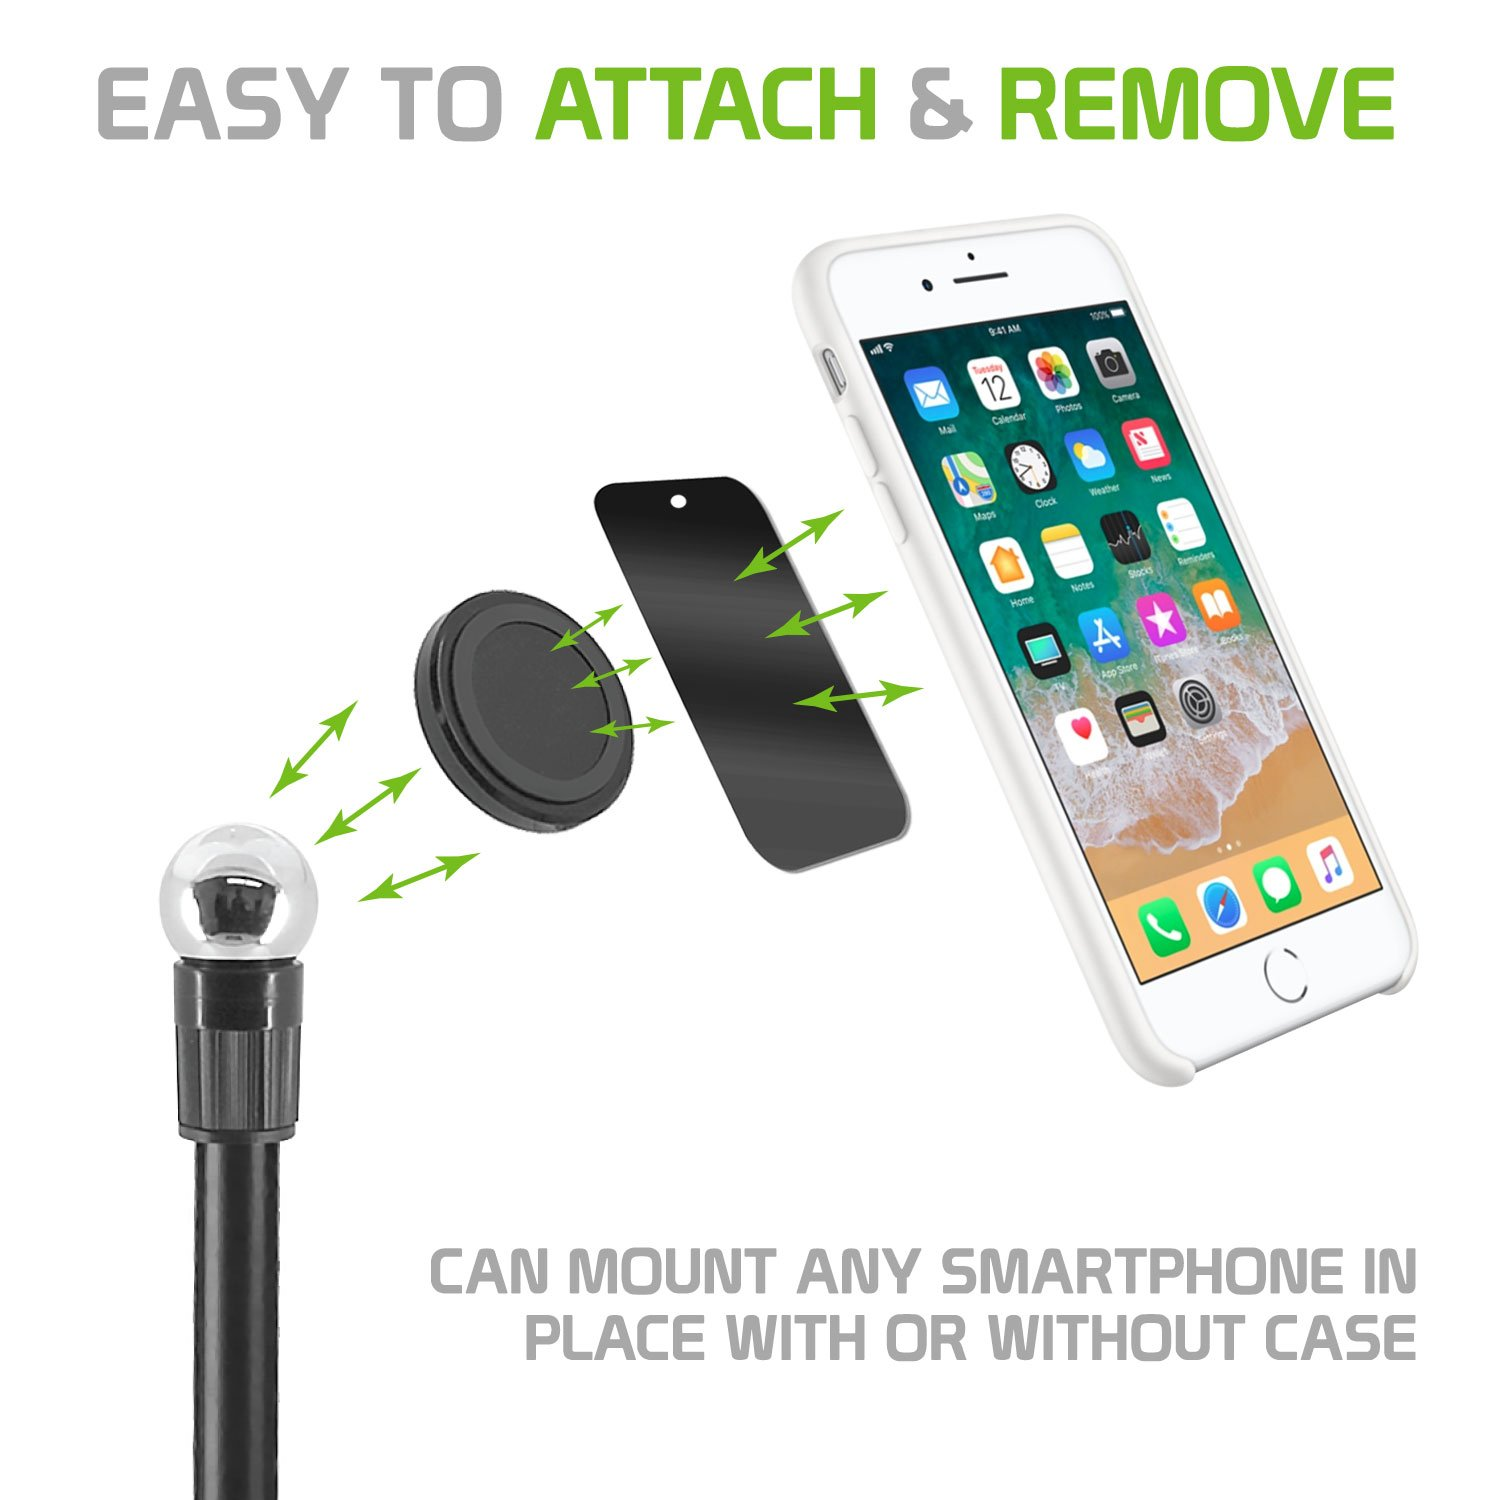 Magnetic Phone Mount,Washable Strong Sticky Gel Pad with Quick Snap Magnet for Windshield or Dashboard Car Phone Holder for iPhone X//8//8Plus//7//7Plus//6s//6Plus Galaxy Note 8. Galaxy S8//S8 Plus